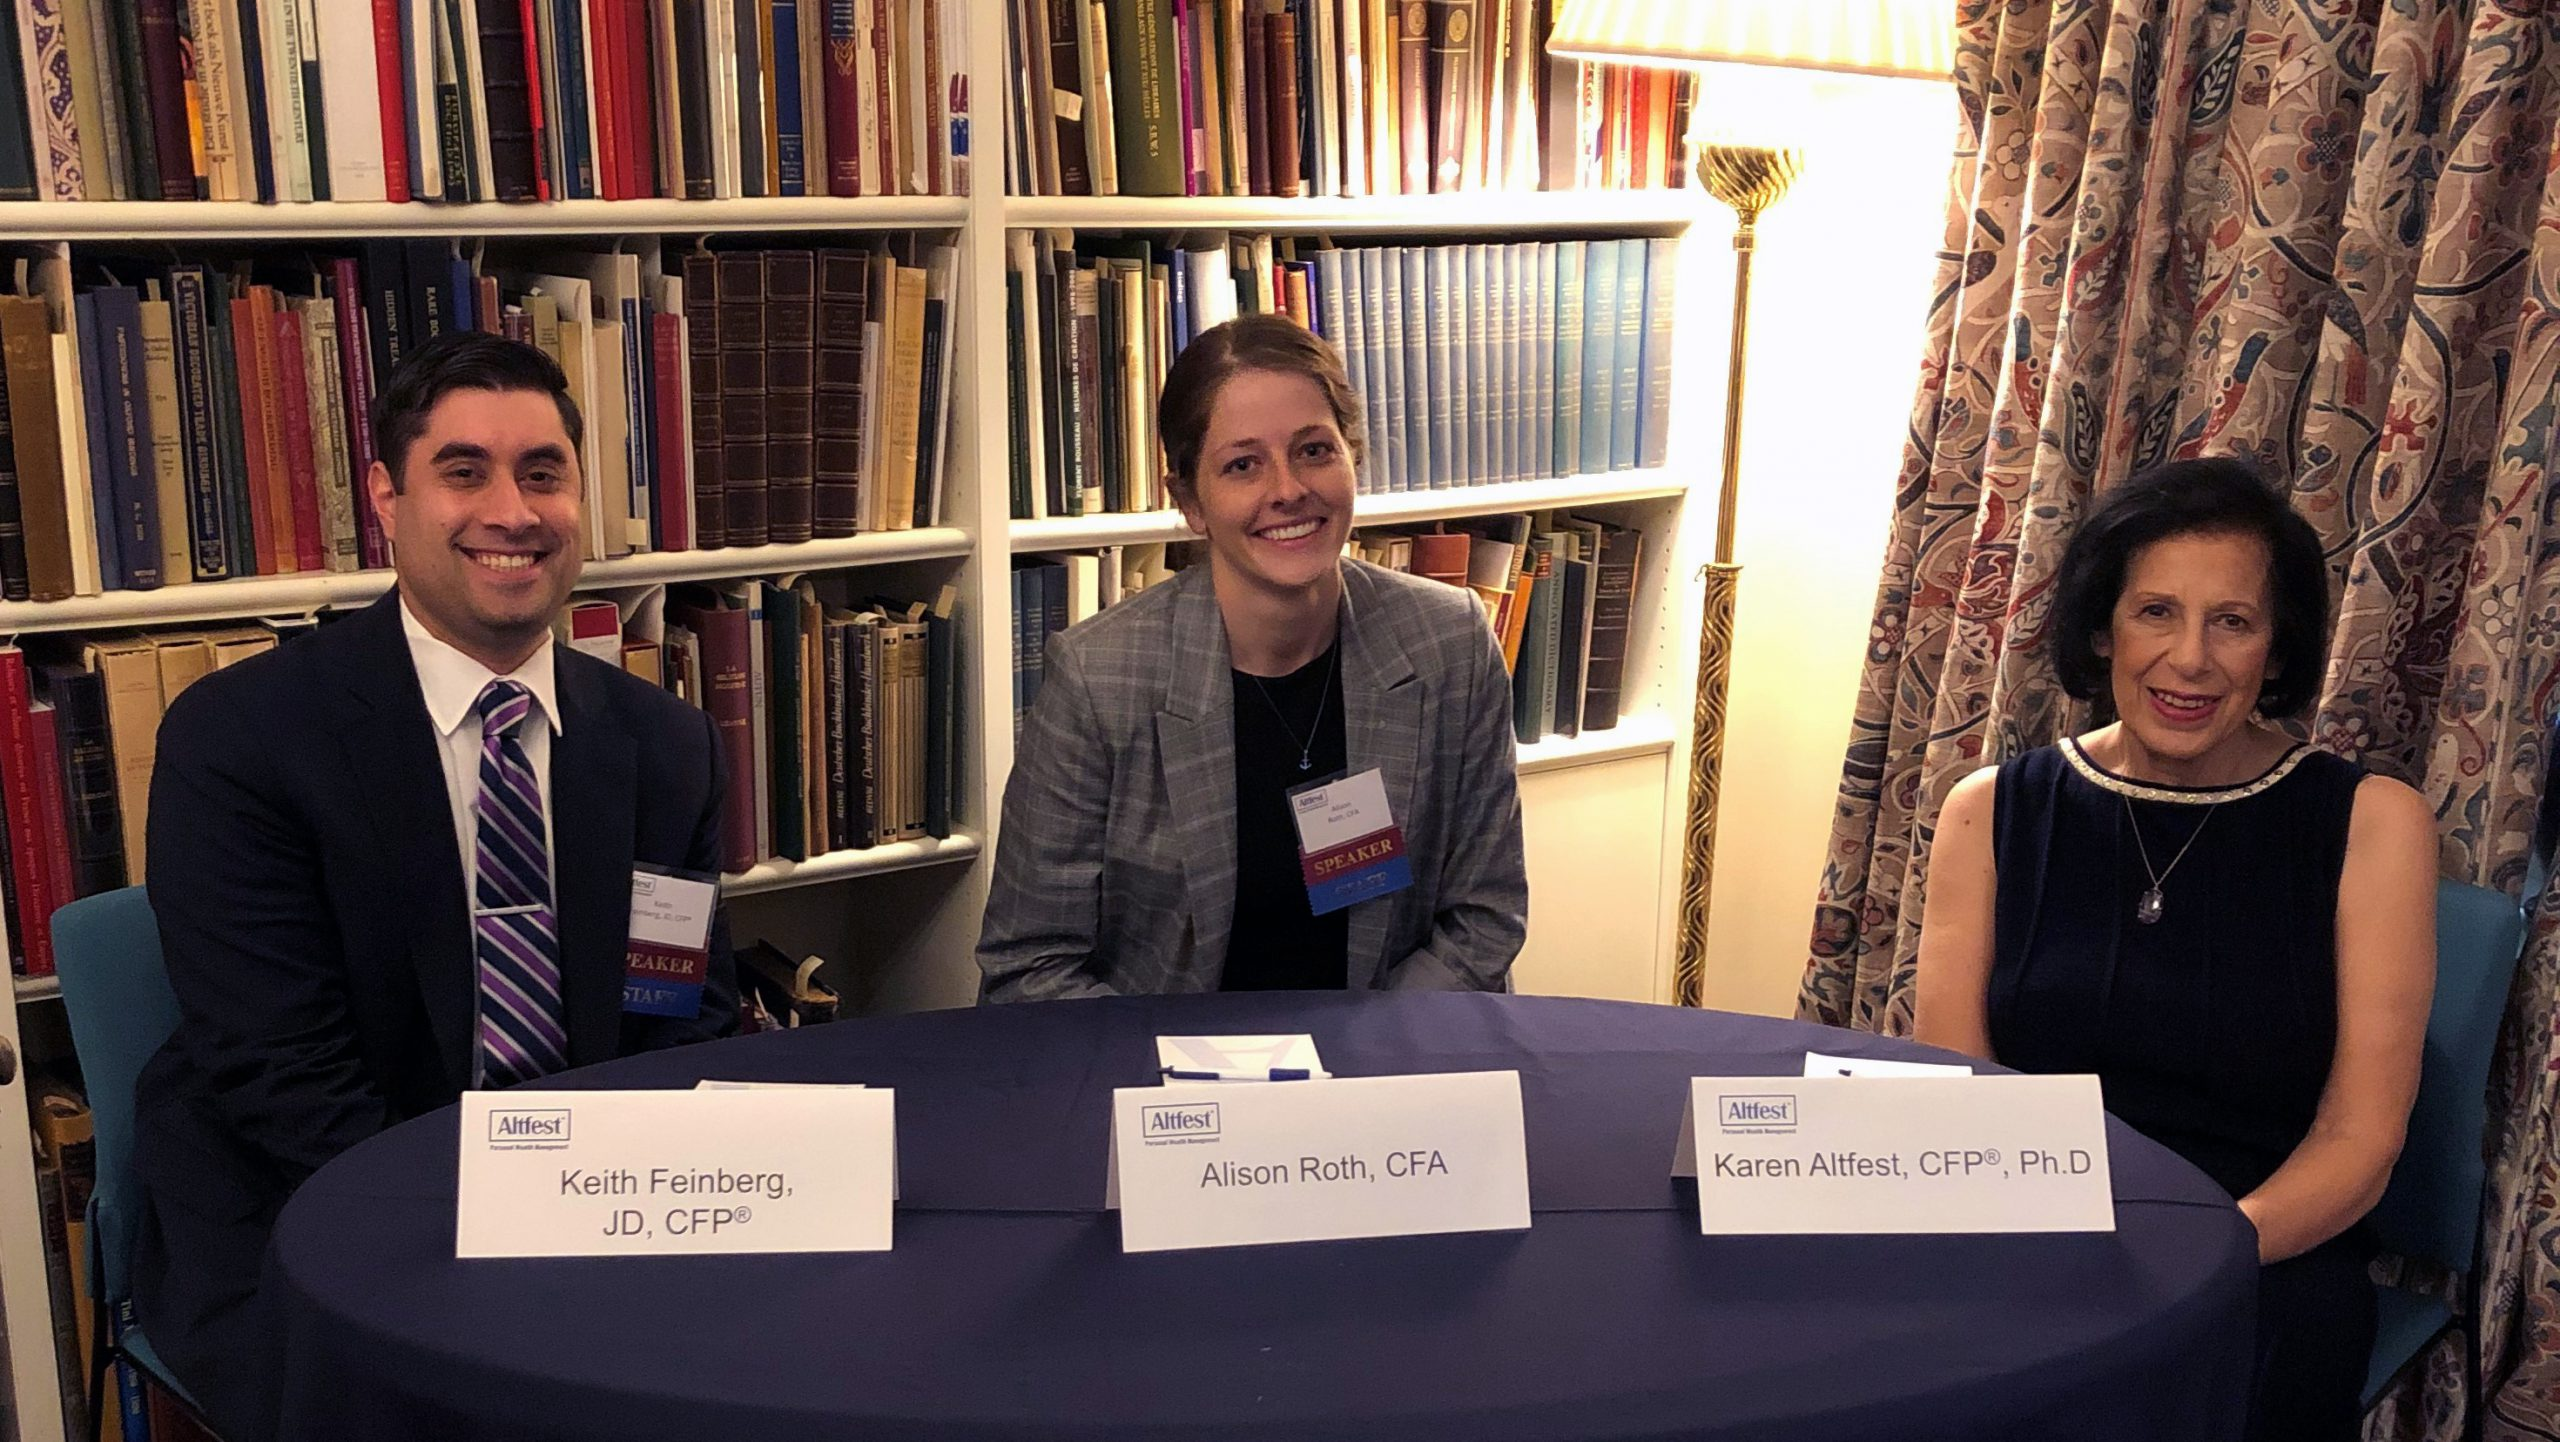 Keith Feinberg, Alison Roth and Karen Altfest